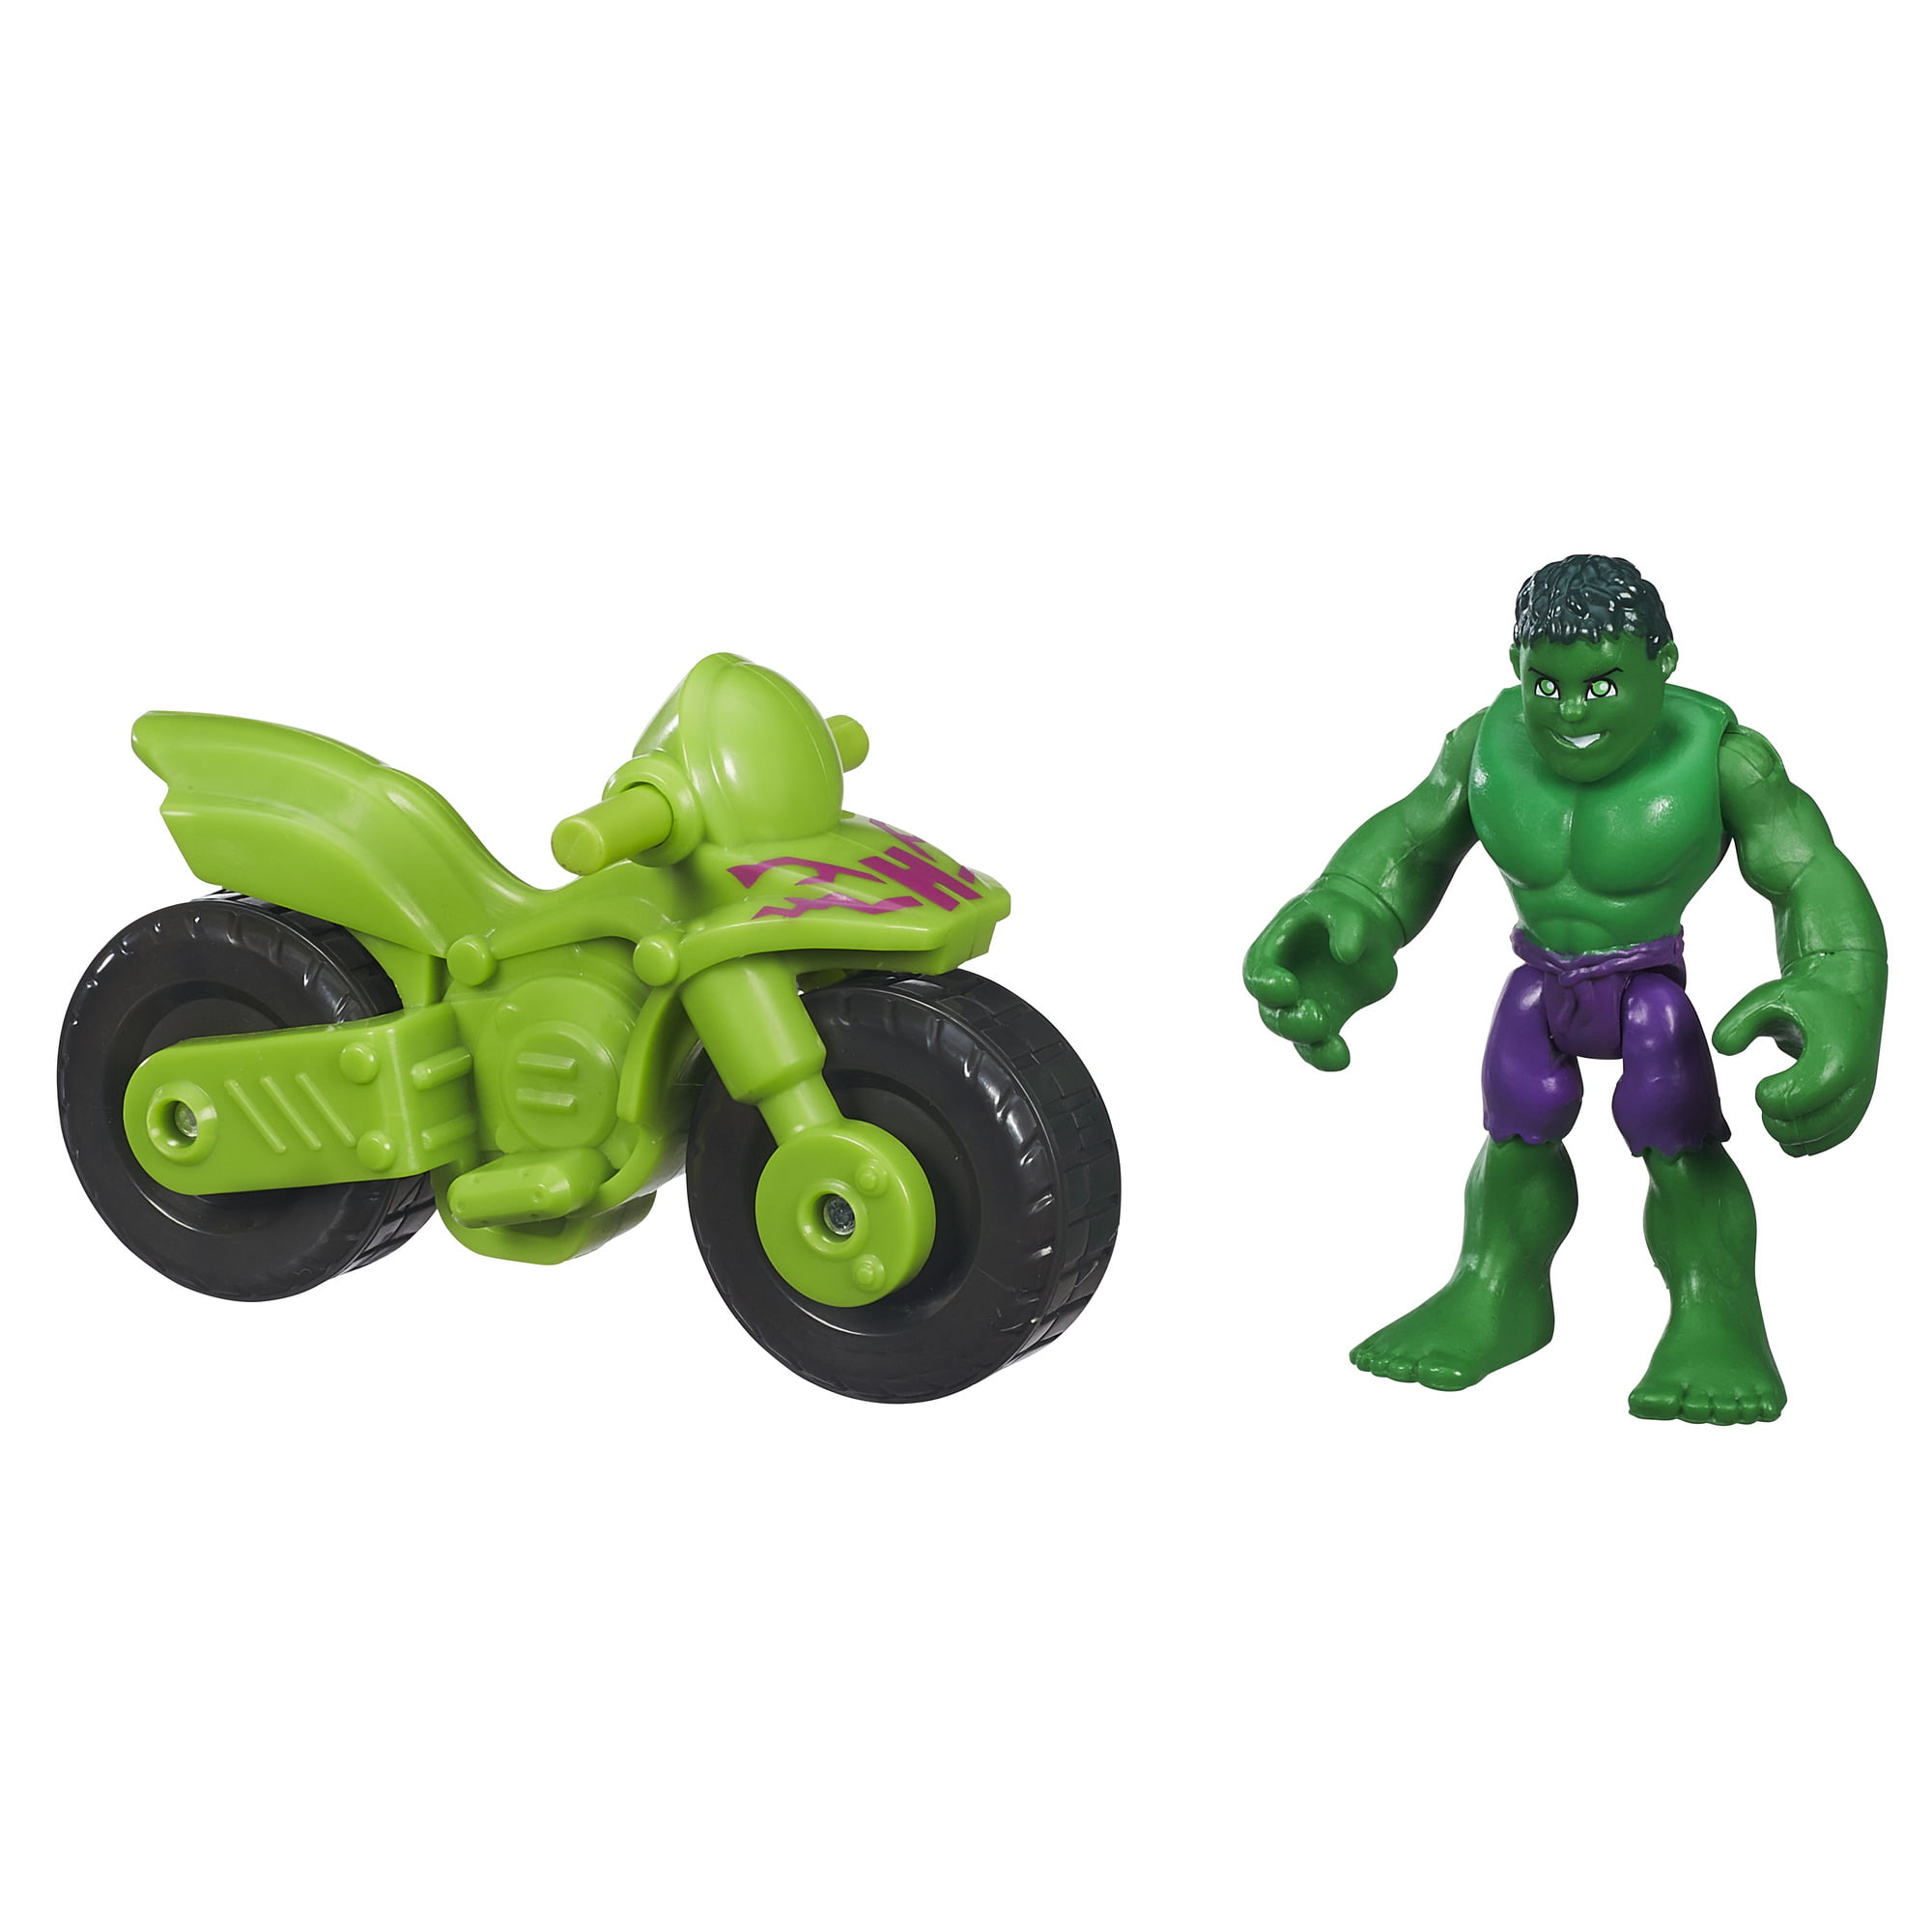 Playskool Heroes Marvel Super Hero Adventures Hulk Figure with Bike by Hasbro